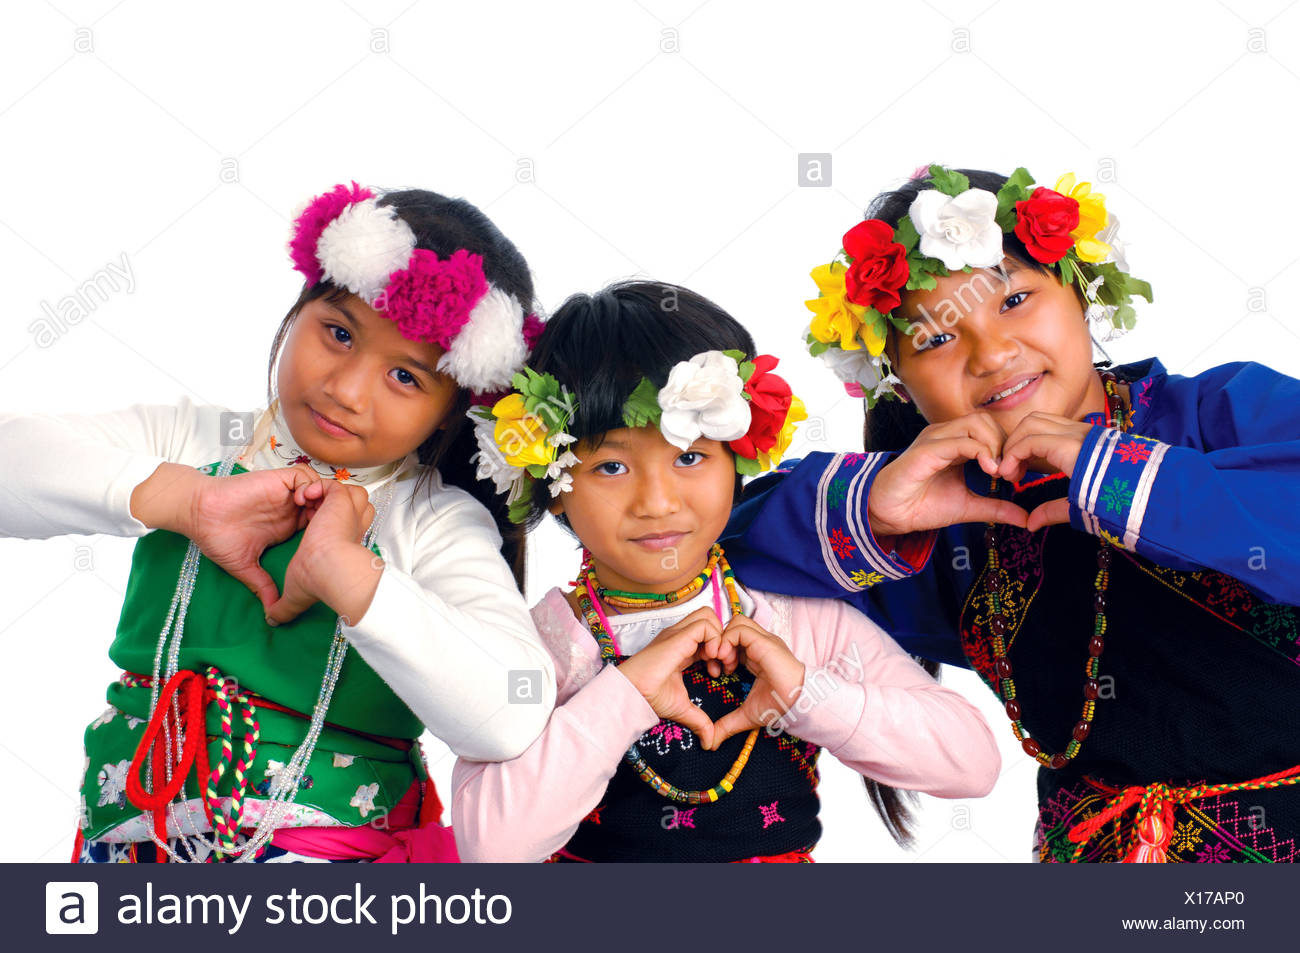 Portrait of three Taiwanese girls gesturing and smiling, Taiwan - Stock Image